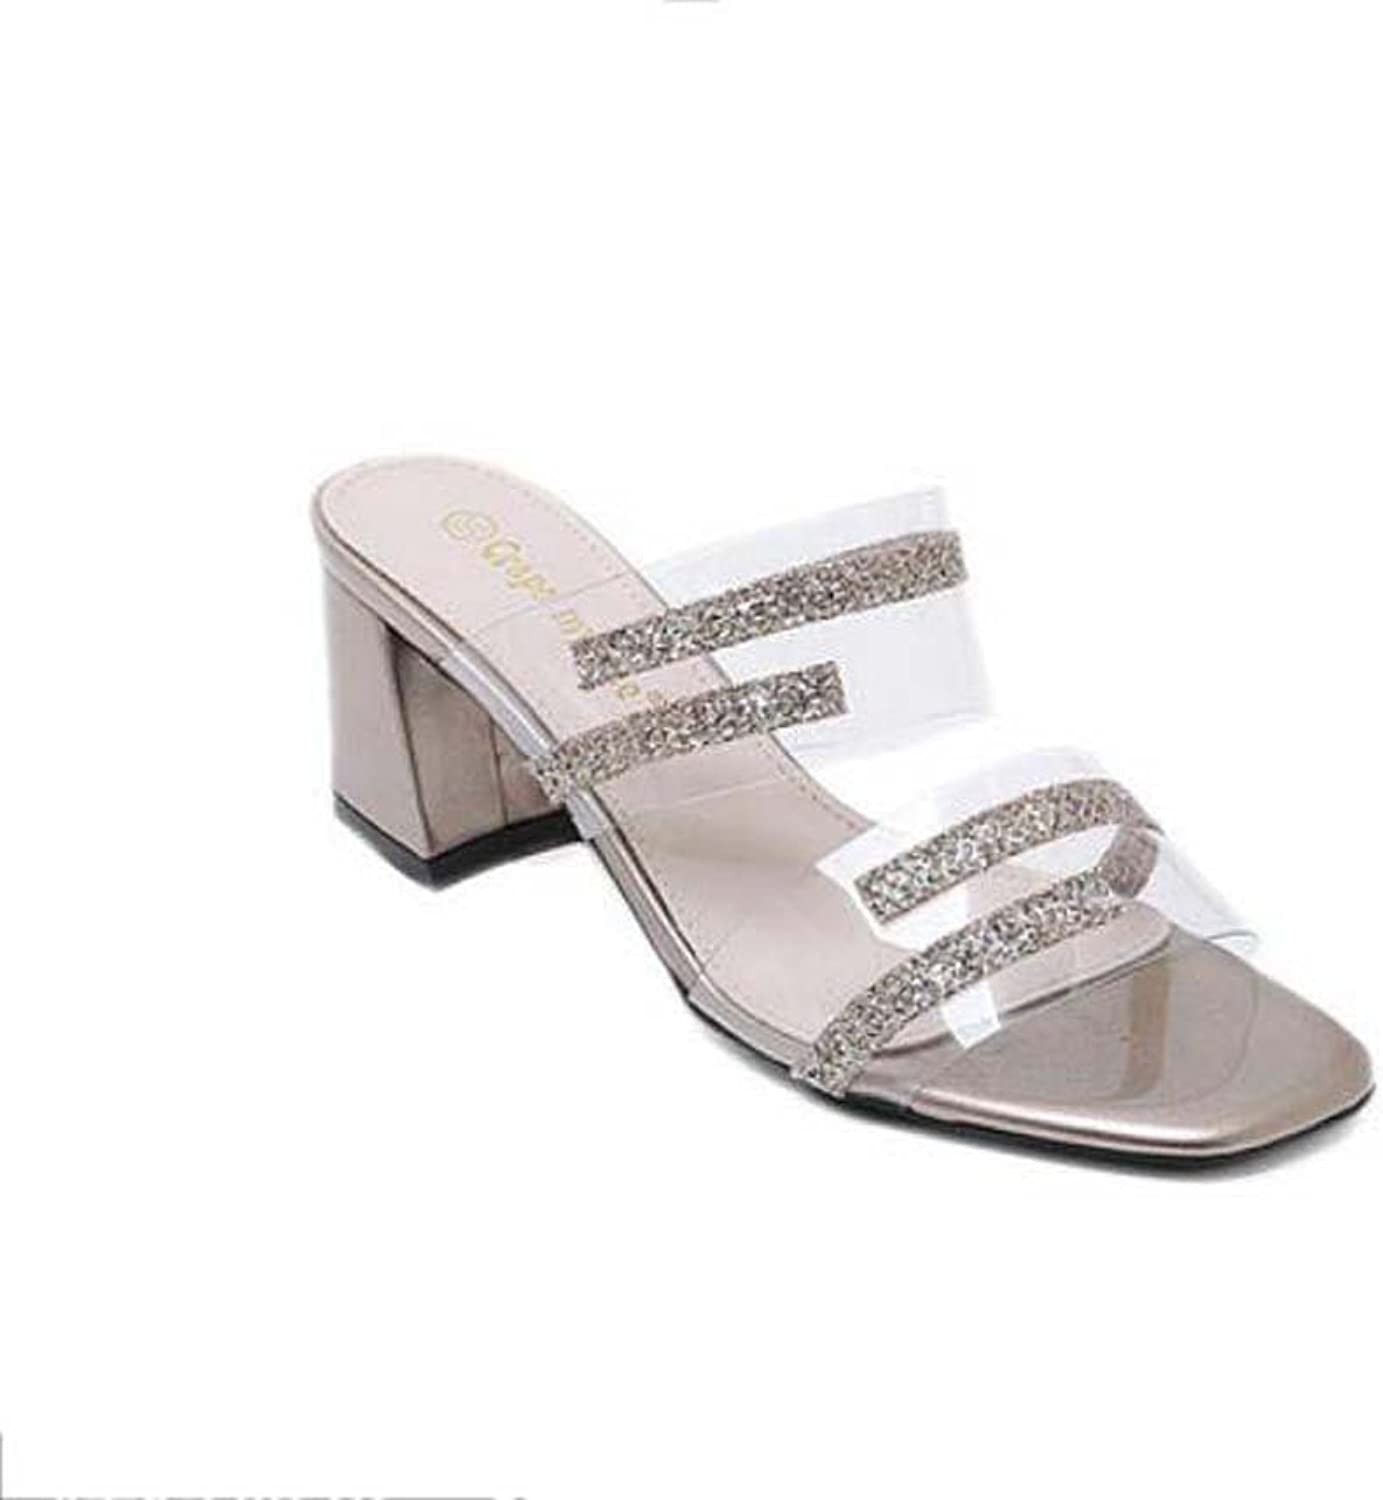 Cool Slippers PVC Sequins Mules Women Pump 6cm Chunkly Heel Open Toe Transparent Sandals Crystal shoes Court shoes Roma shoes EU Size 34-40